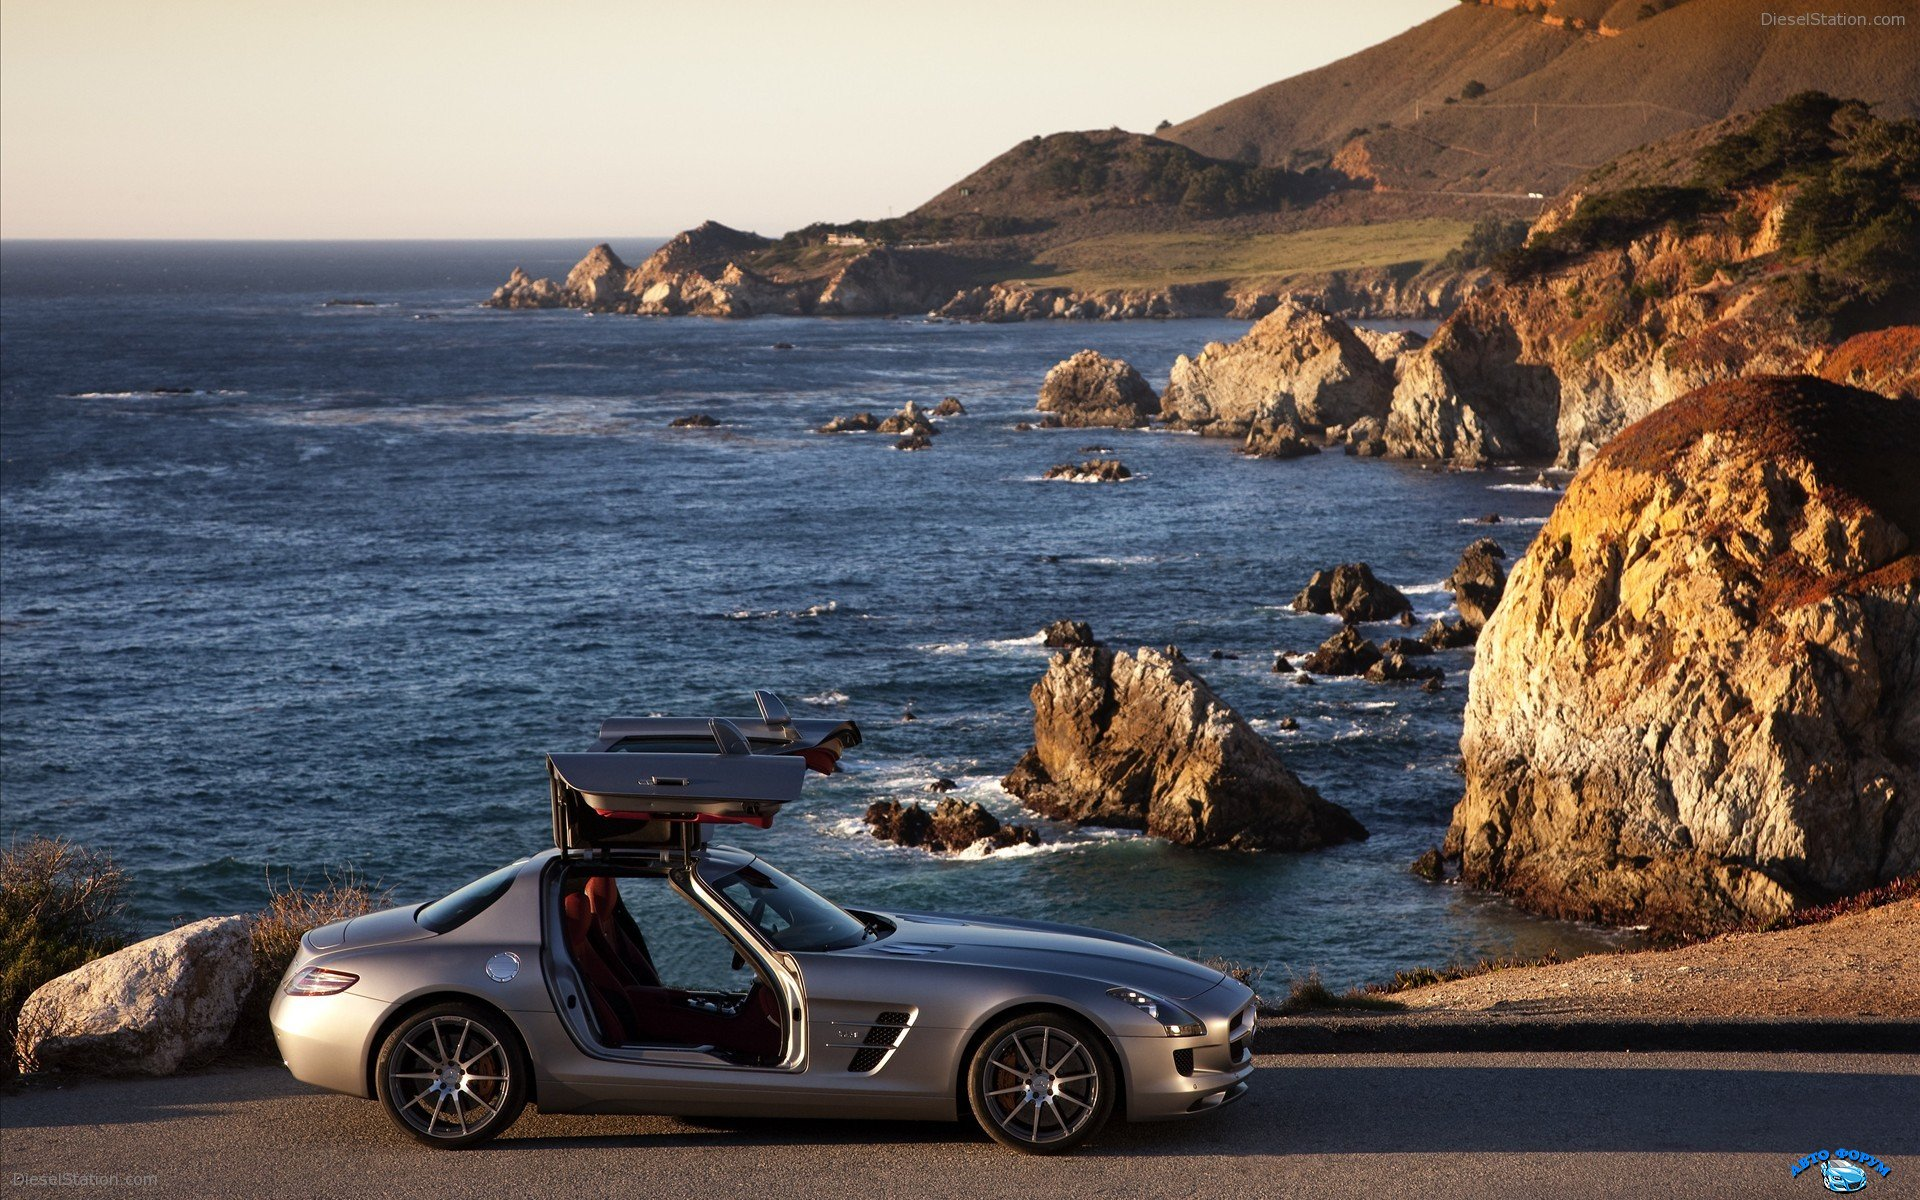 Mercedes-Benz-SLS-AMG-2011-widescreen-14.jpg